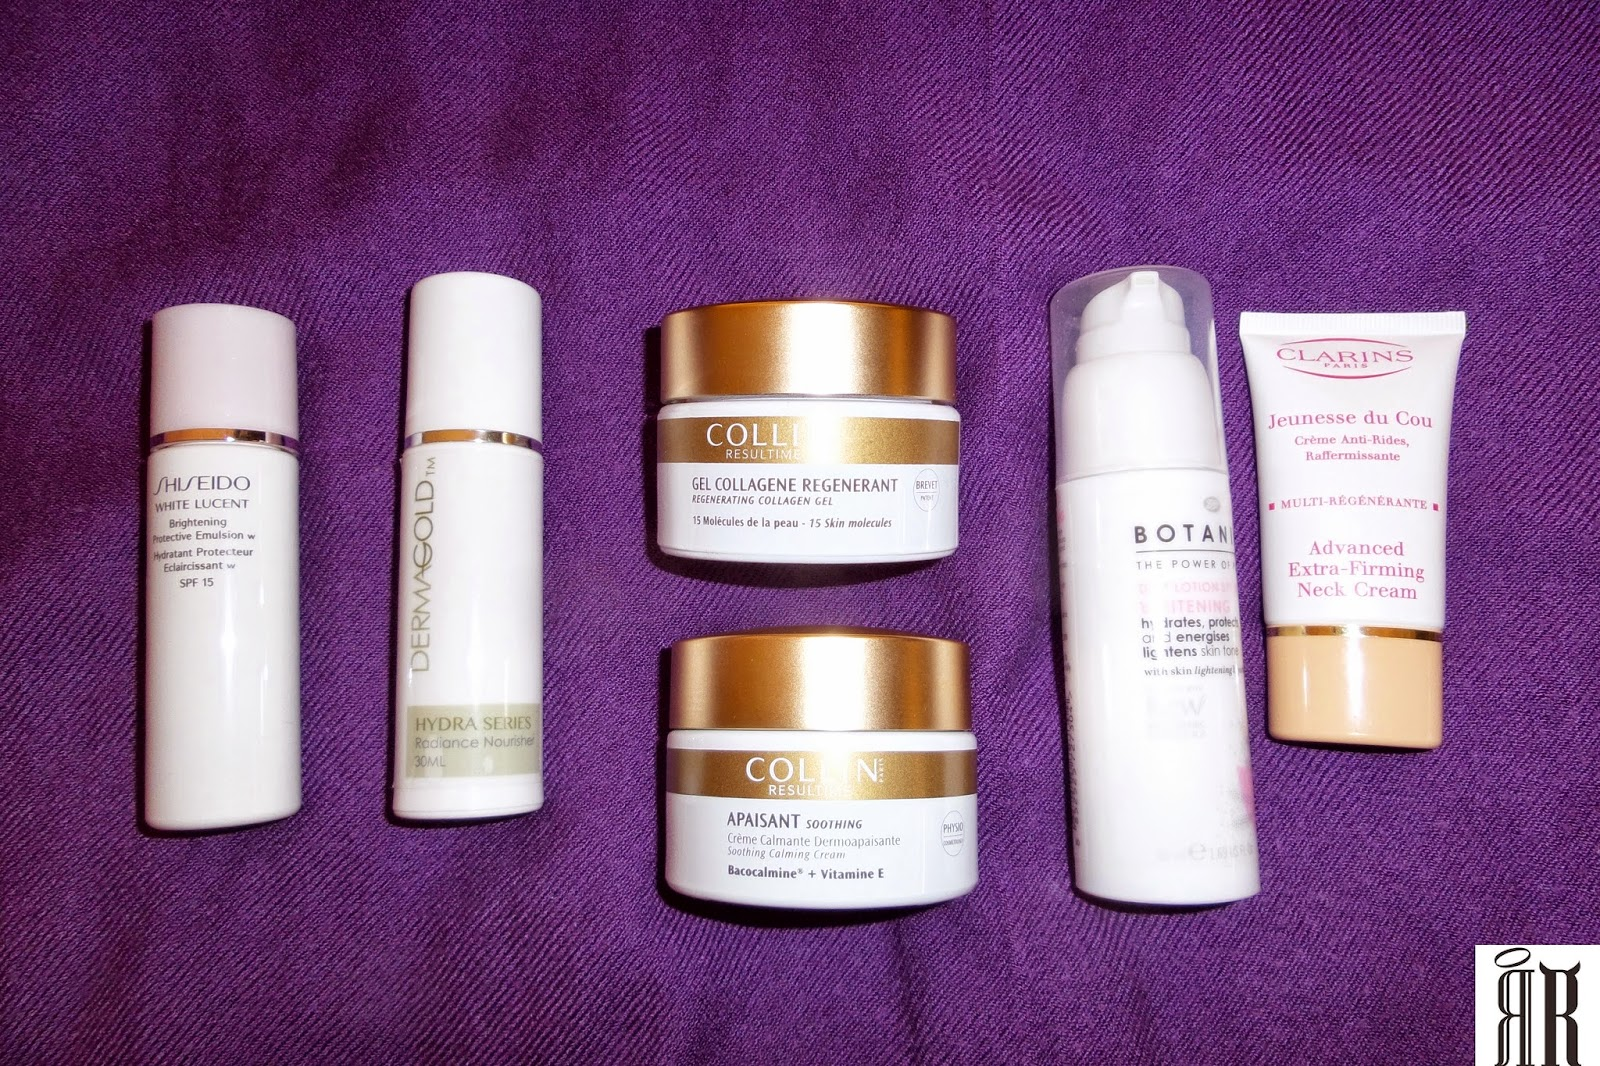 Shiseido Dermagold Collin Resultime Clarins Botanics